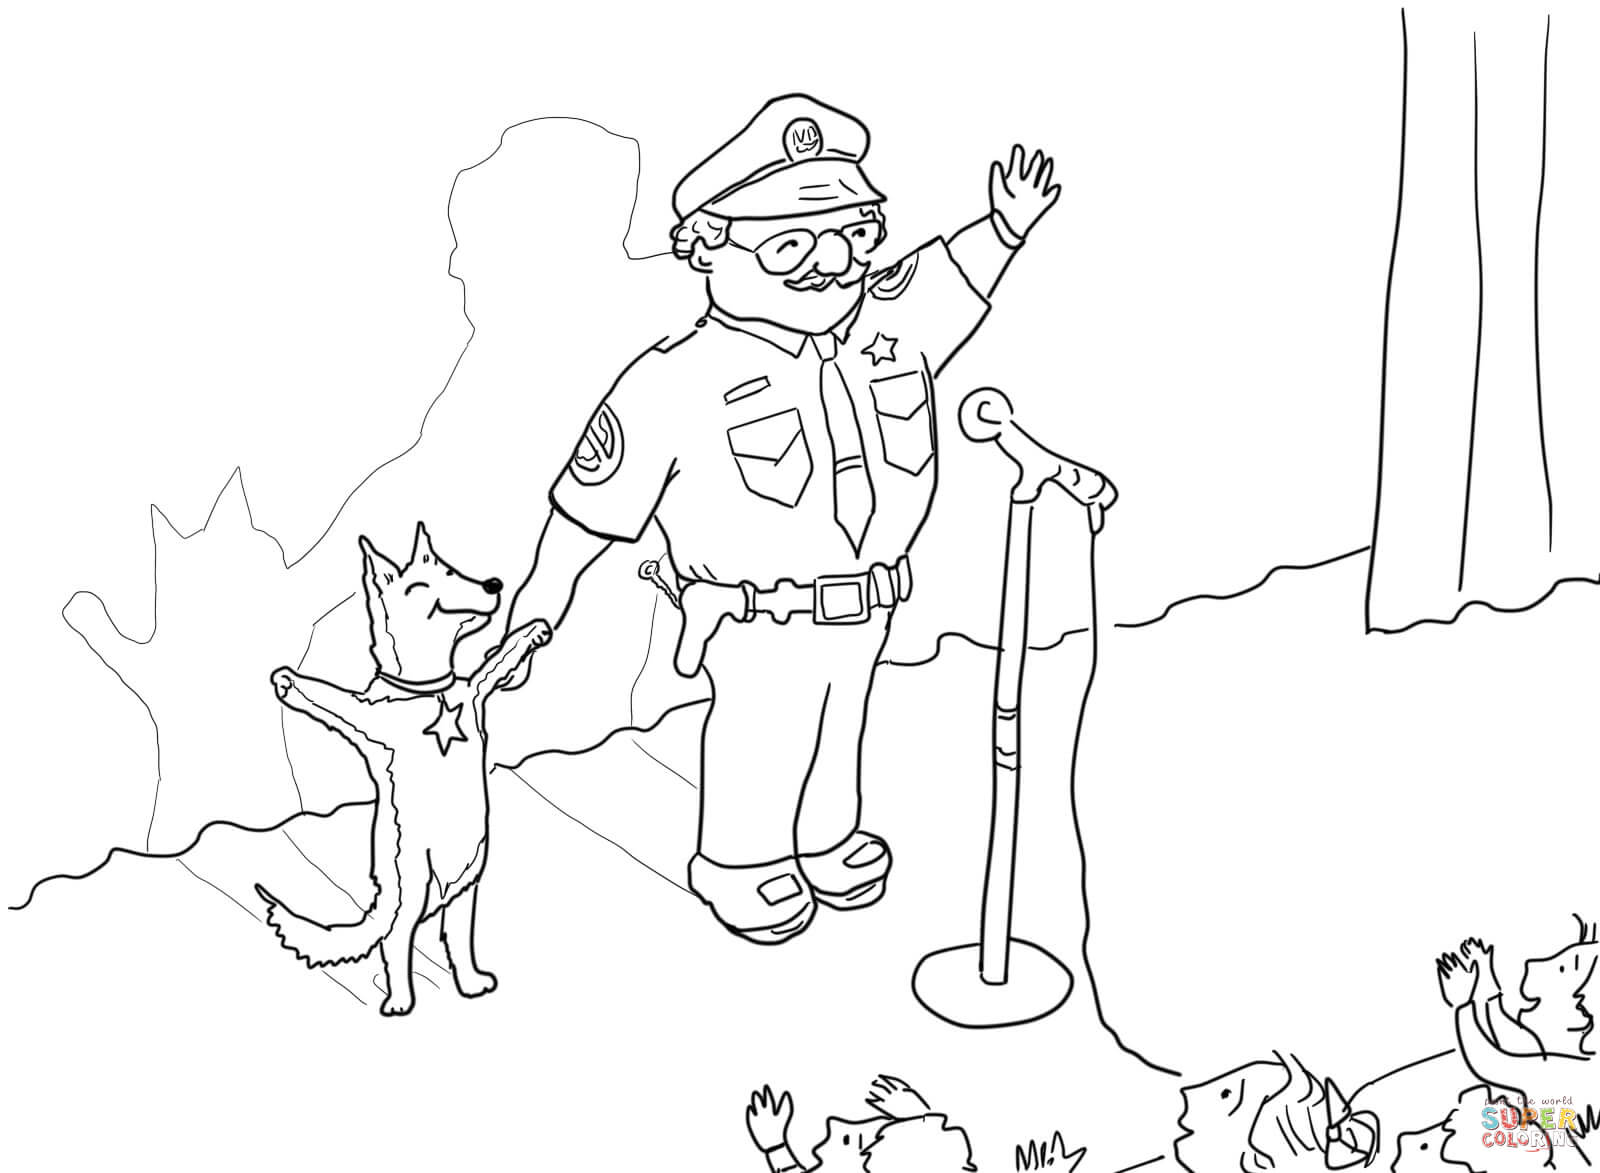 officer buckle and gloria coloring sheets officer buckle and gloria coloring pages coloring home sheets buckle officer and coloring gloria